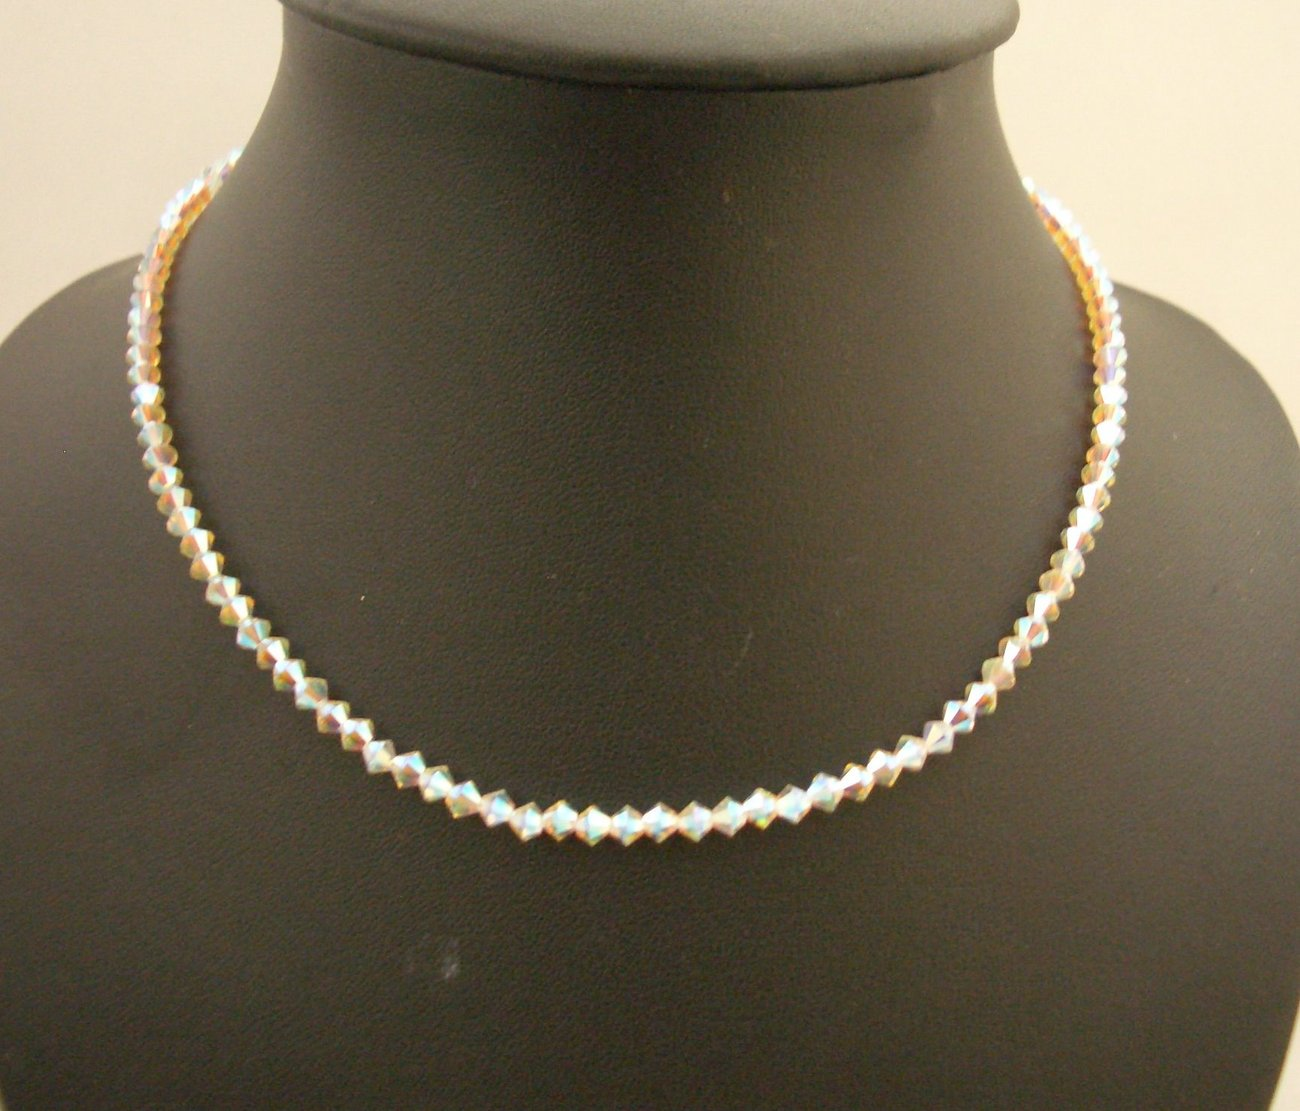 Primary image for Round Neck Necklace String Swarovski AB 2X Crystals Necklace